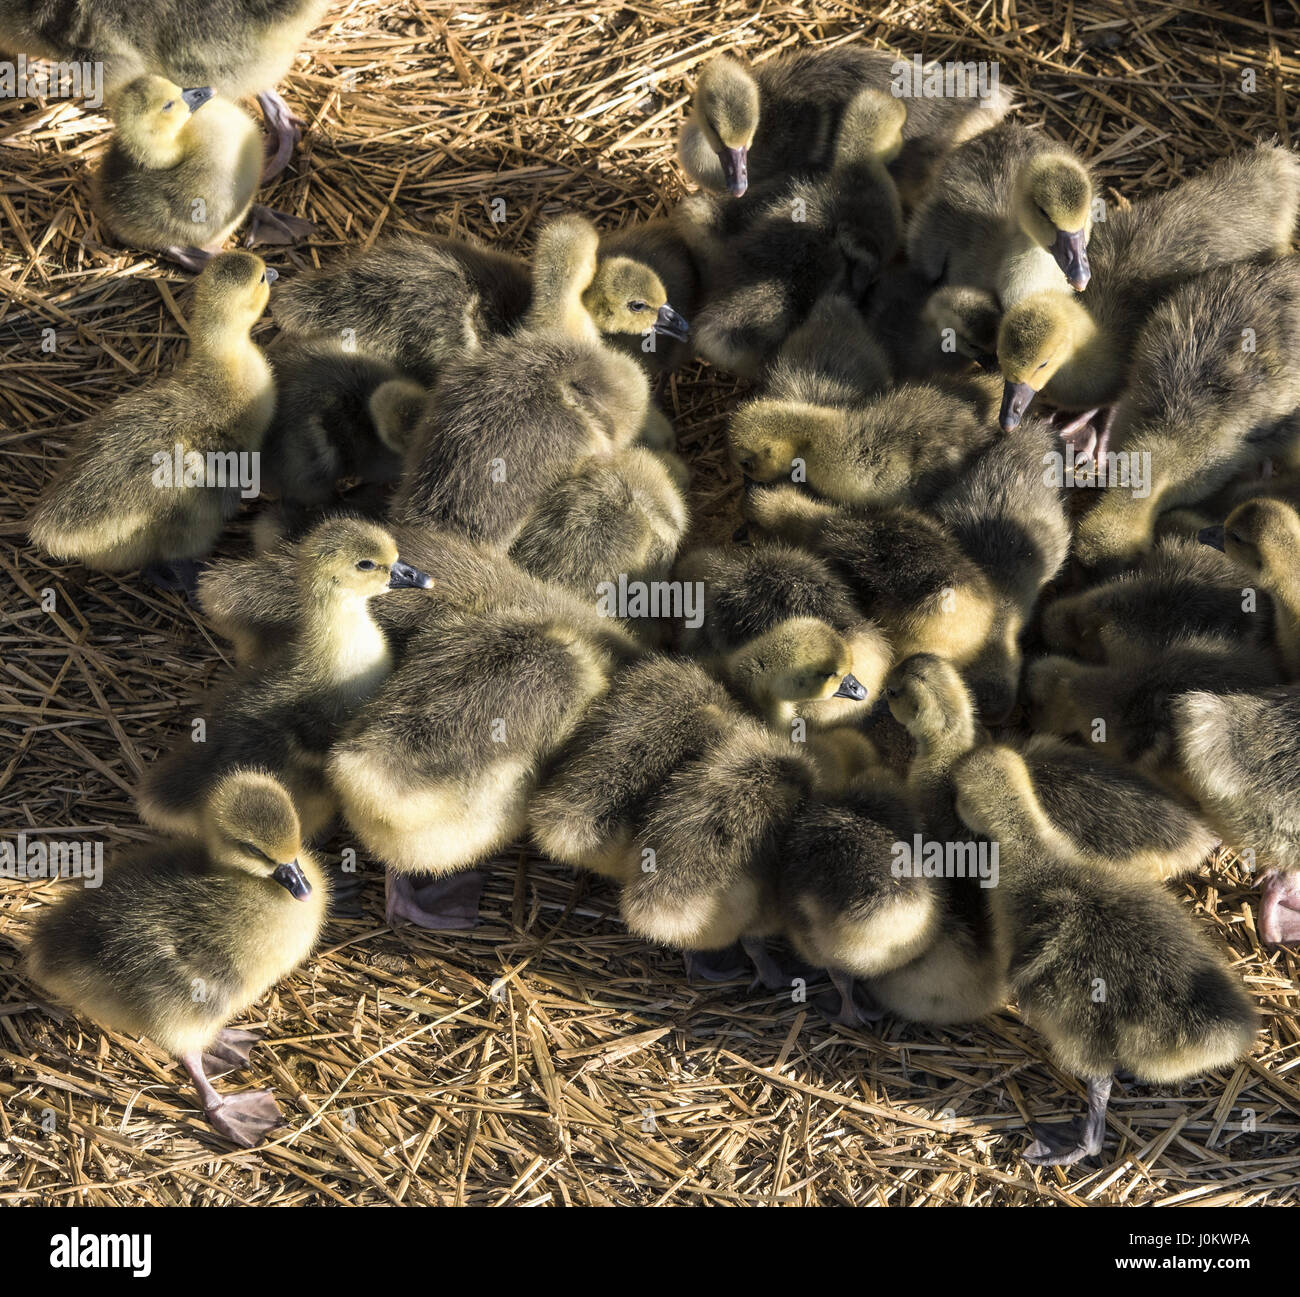 Industrial poultry agriculture, ducklings in farm. - Stock Image